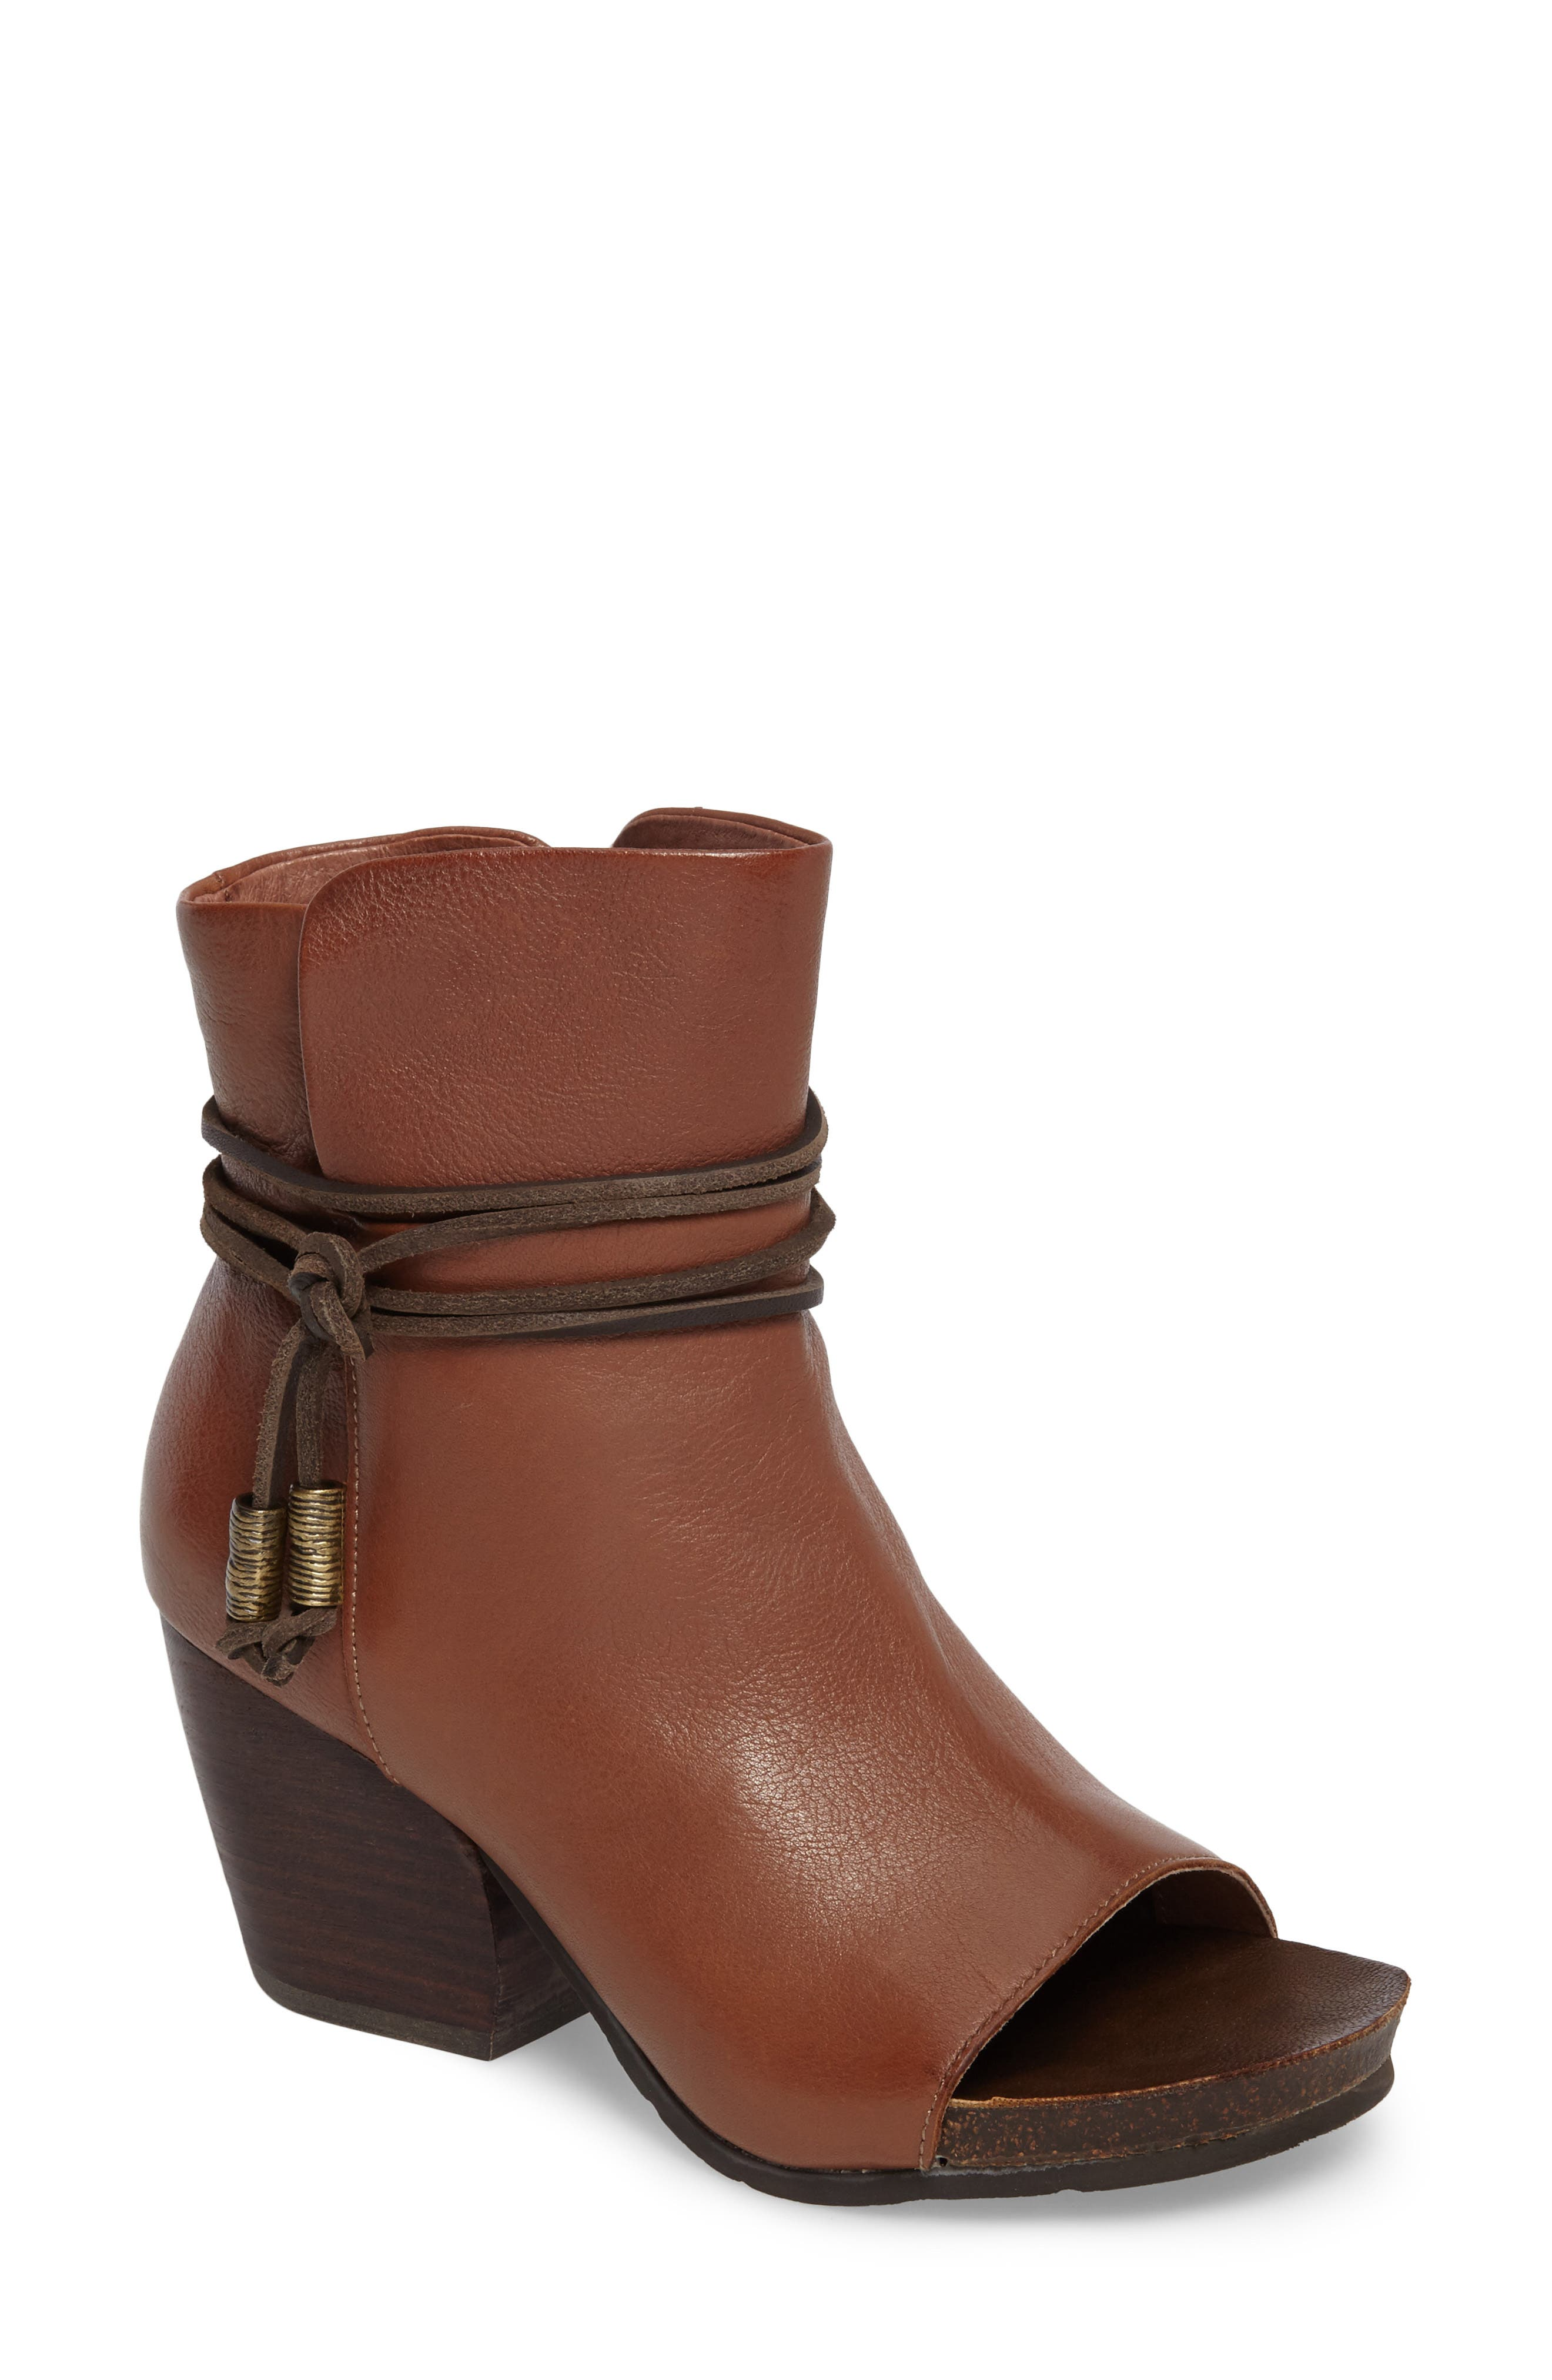 Otbt Open Toe Bootie- Brown